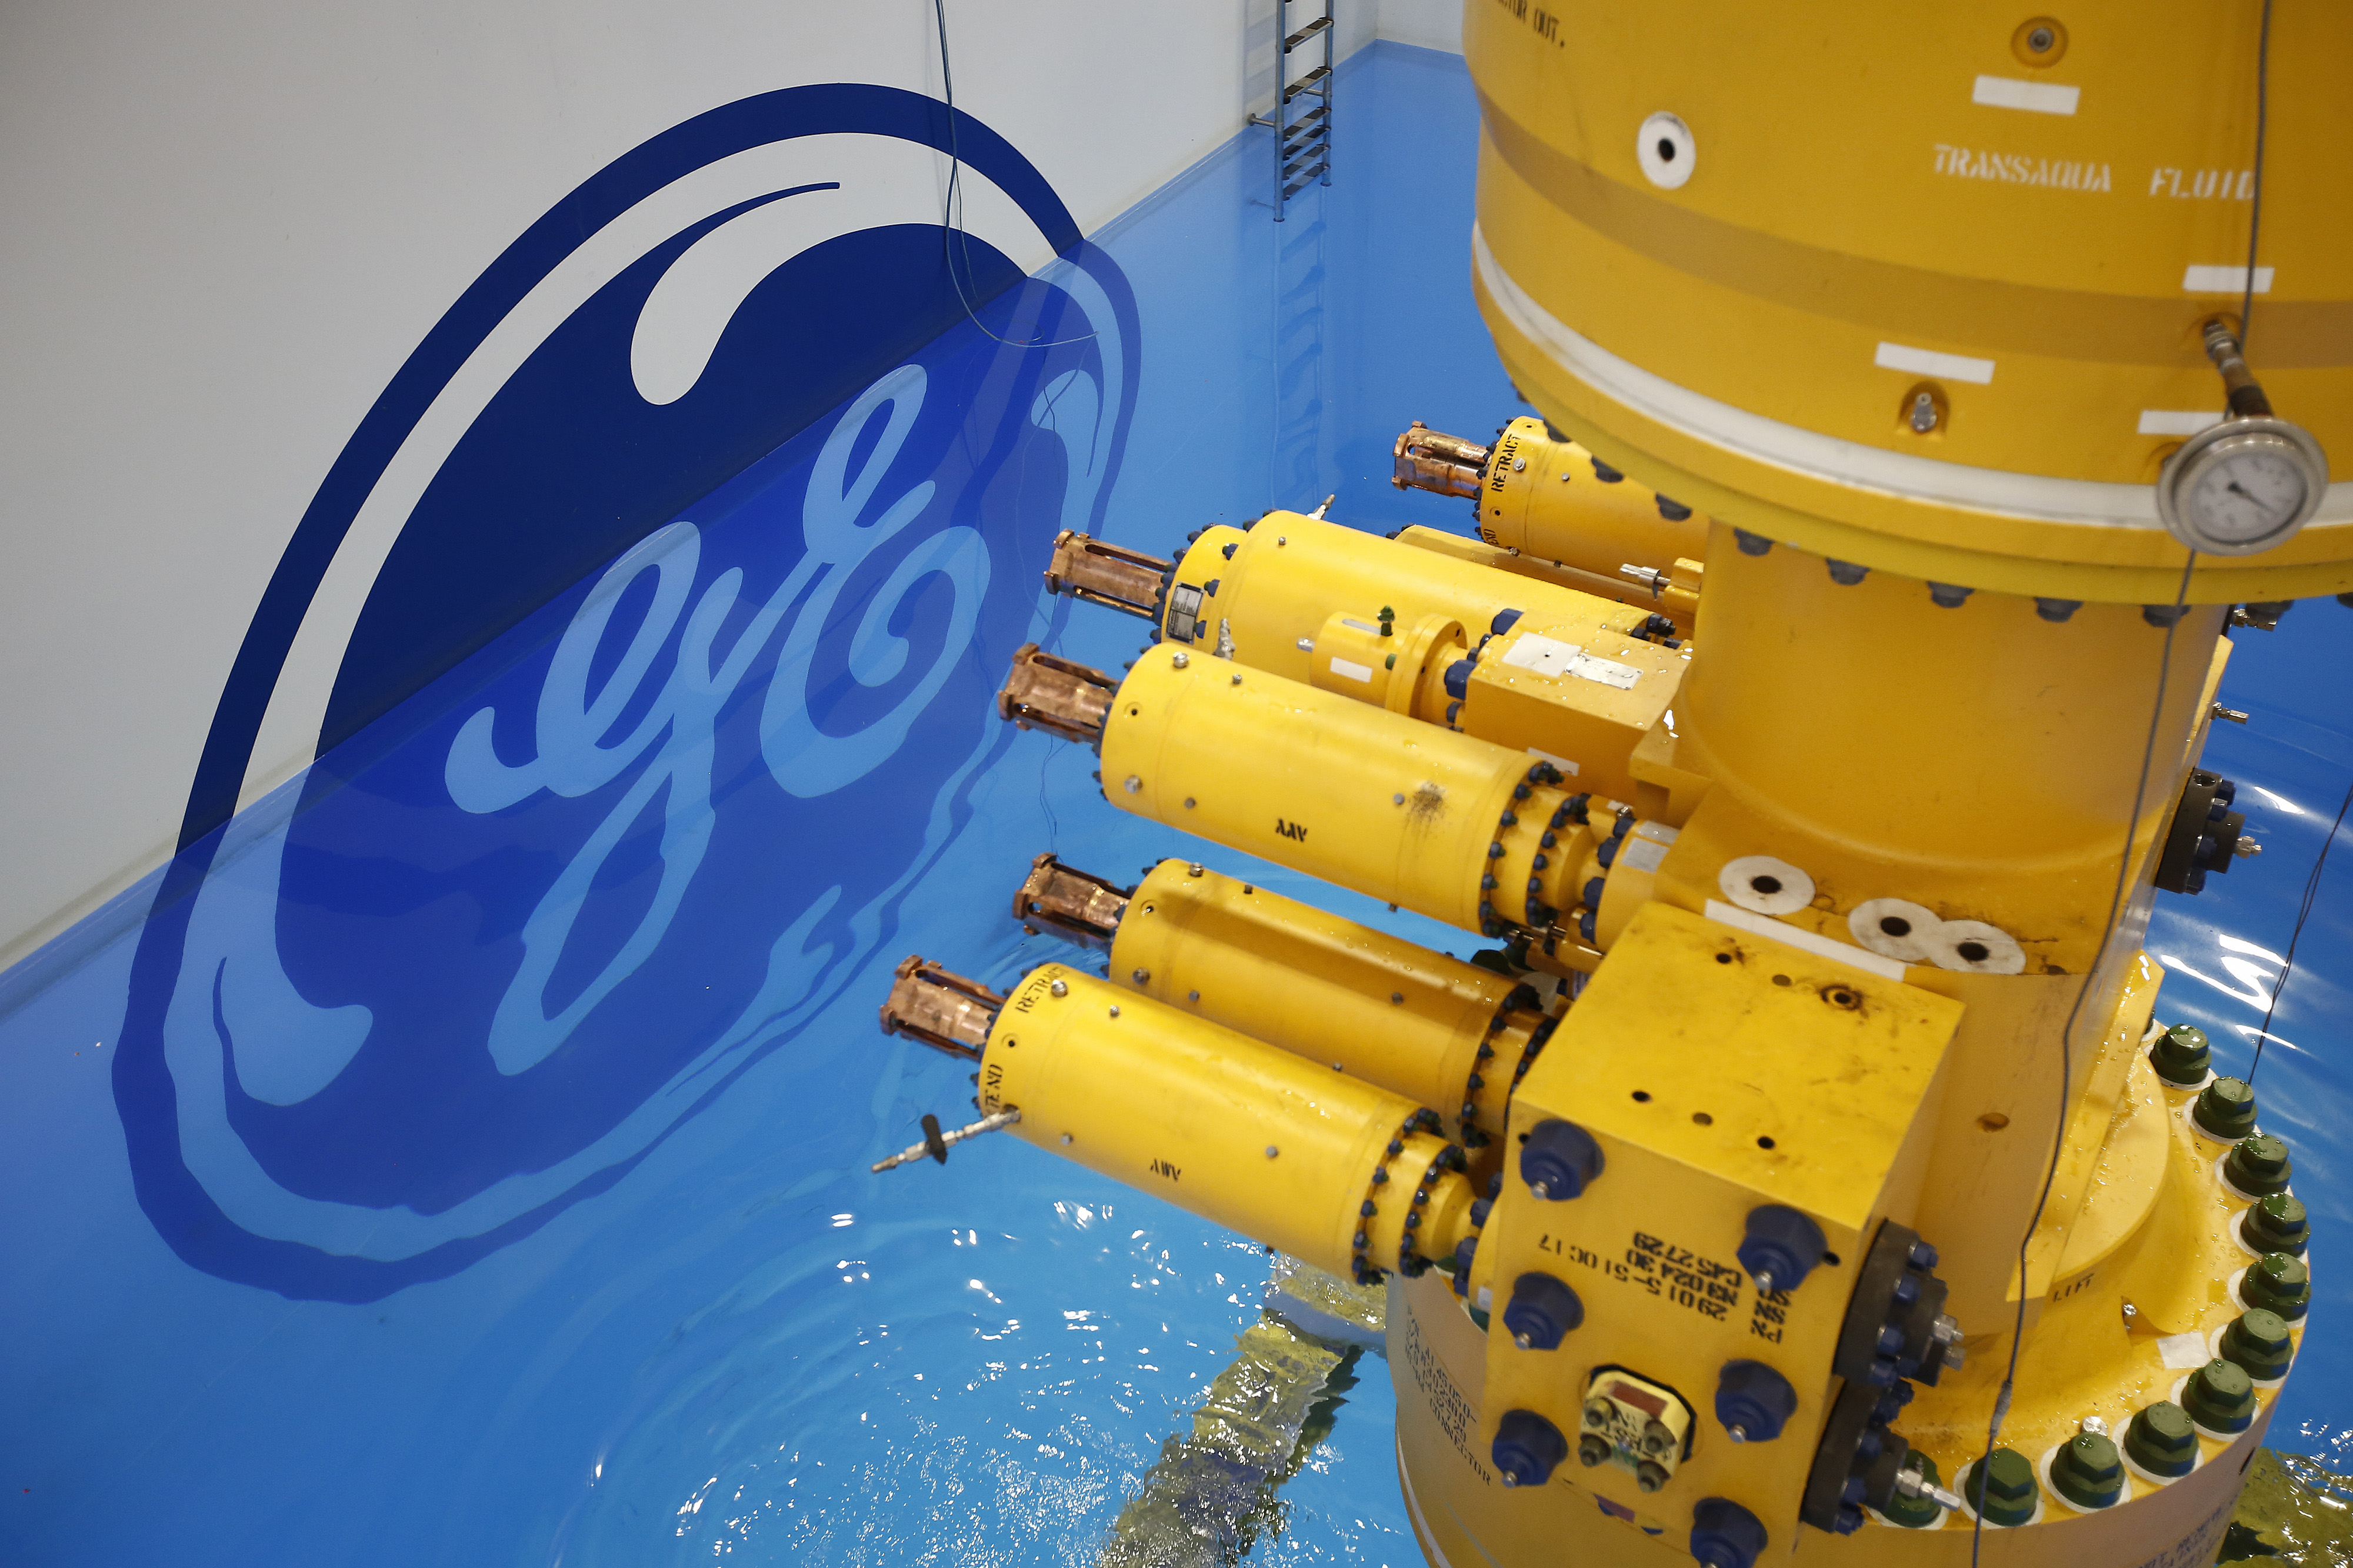 FILE PHOTO: A subsea oil and gas tree is lowered into a testing pool at the General Electric Co. (GE) manufacturing plant in Montrose, U.K. Photographer: Simon Dawson/Bloomberg via Getty Images